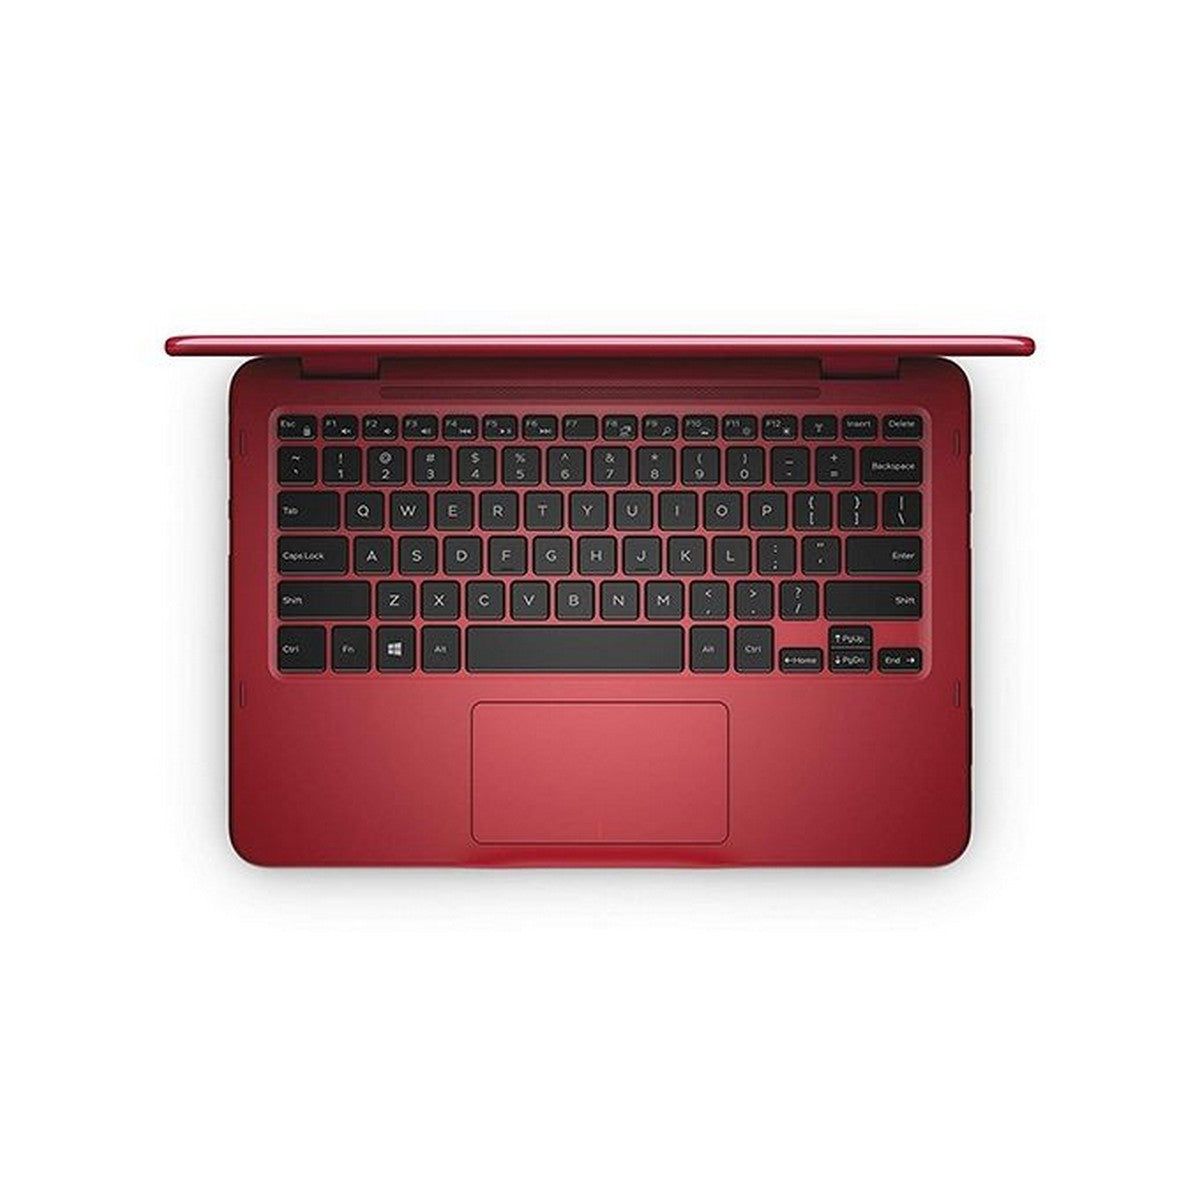 Dell Inspiron 11 3185 2 in 1 Laptop 11.6'' HD IPS , Amd A-Series A9-9420e 1.8 GHz, 4GB RAM, Radeon R5 GPU, 500GB HDD, Touchscreen, Windows 10, RED